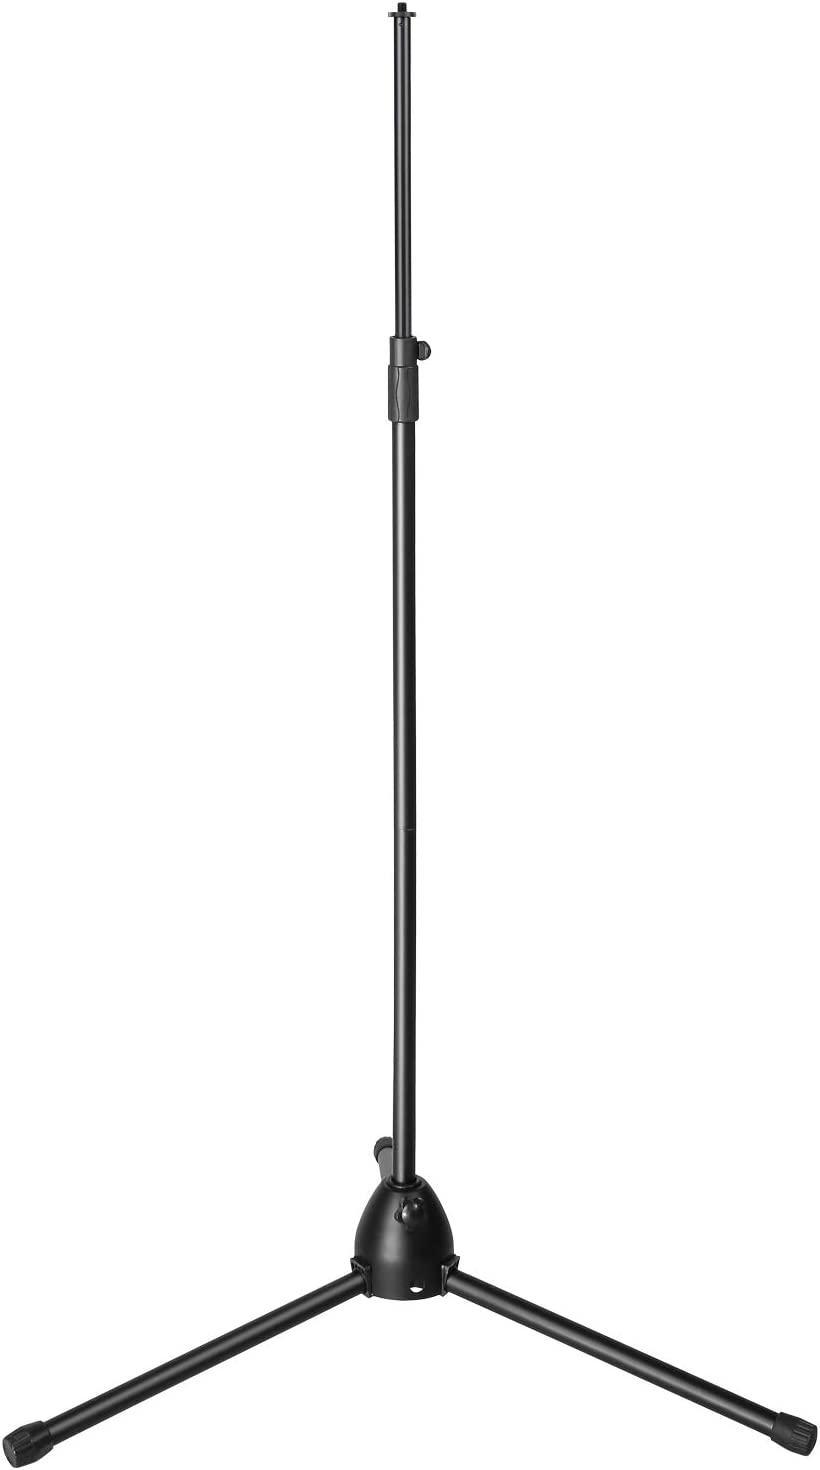 Microphone Stand, AGPTEK Condenser Microphone Stand with Non-Slip Feet, Adjustable Height & Foldable Design, 33.46-68.9 inches, Suitable for Supporting Acoustic Isolation Shield in Studio (Black)